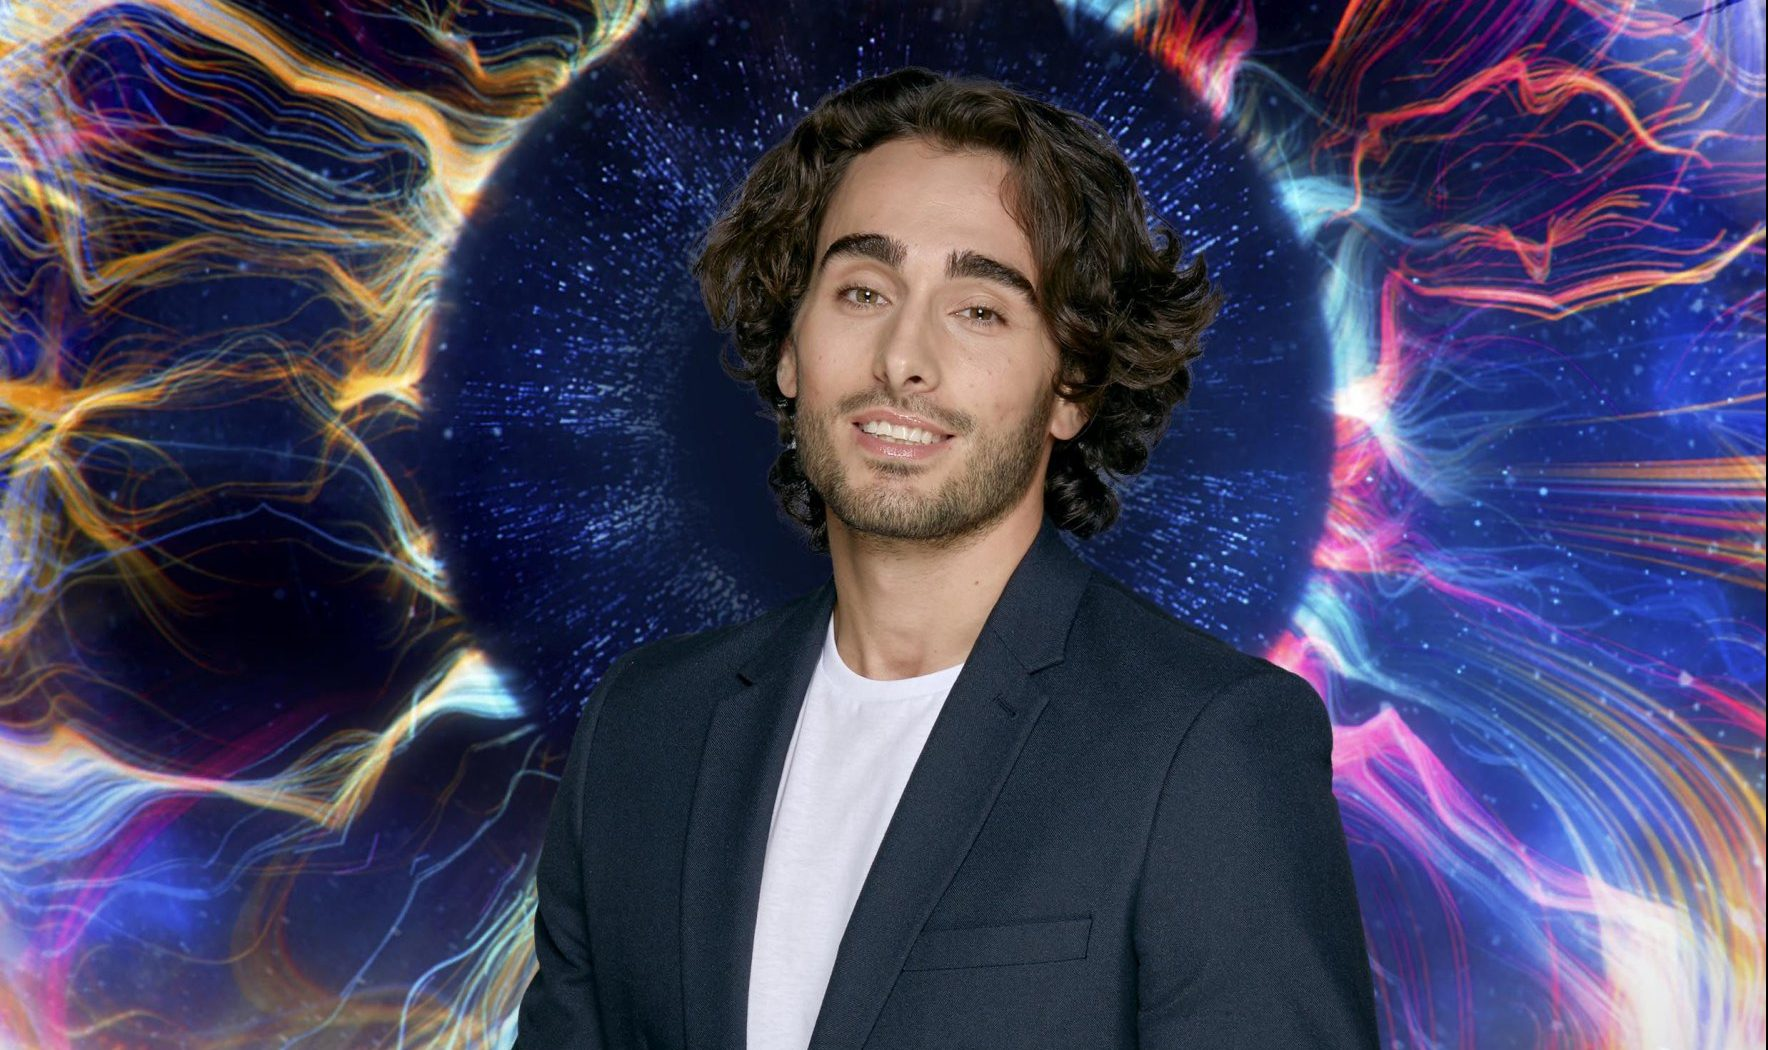 What did Lewis say and why was he removed from Big Brother?